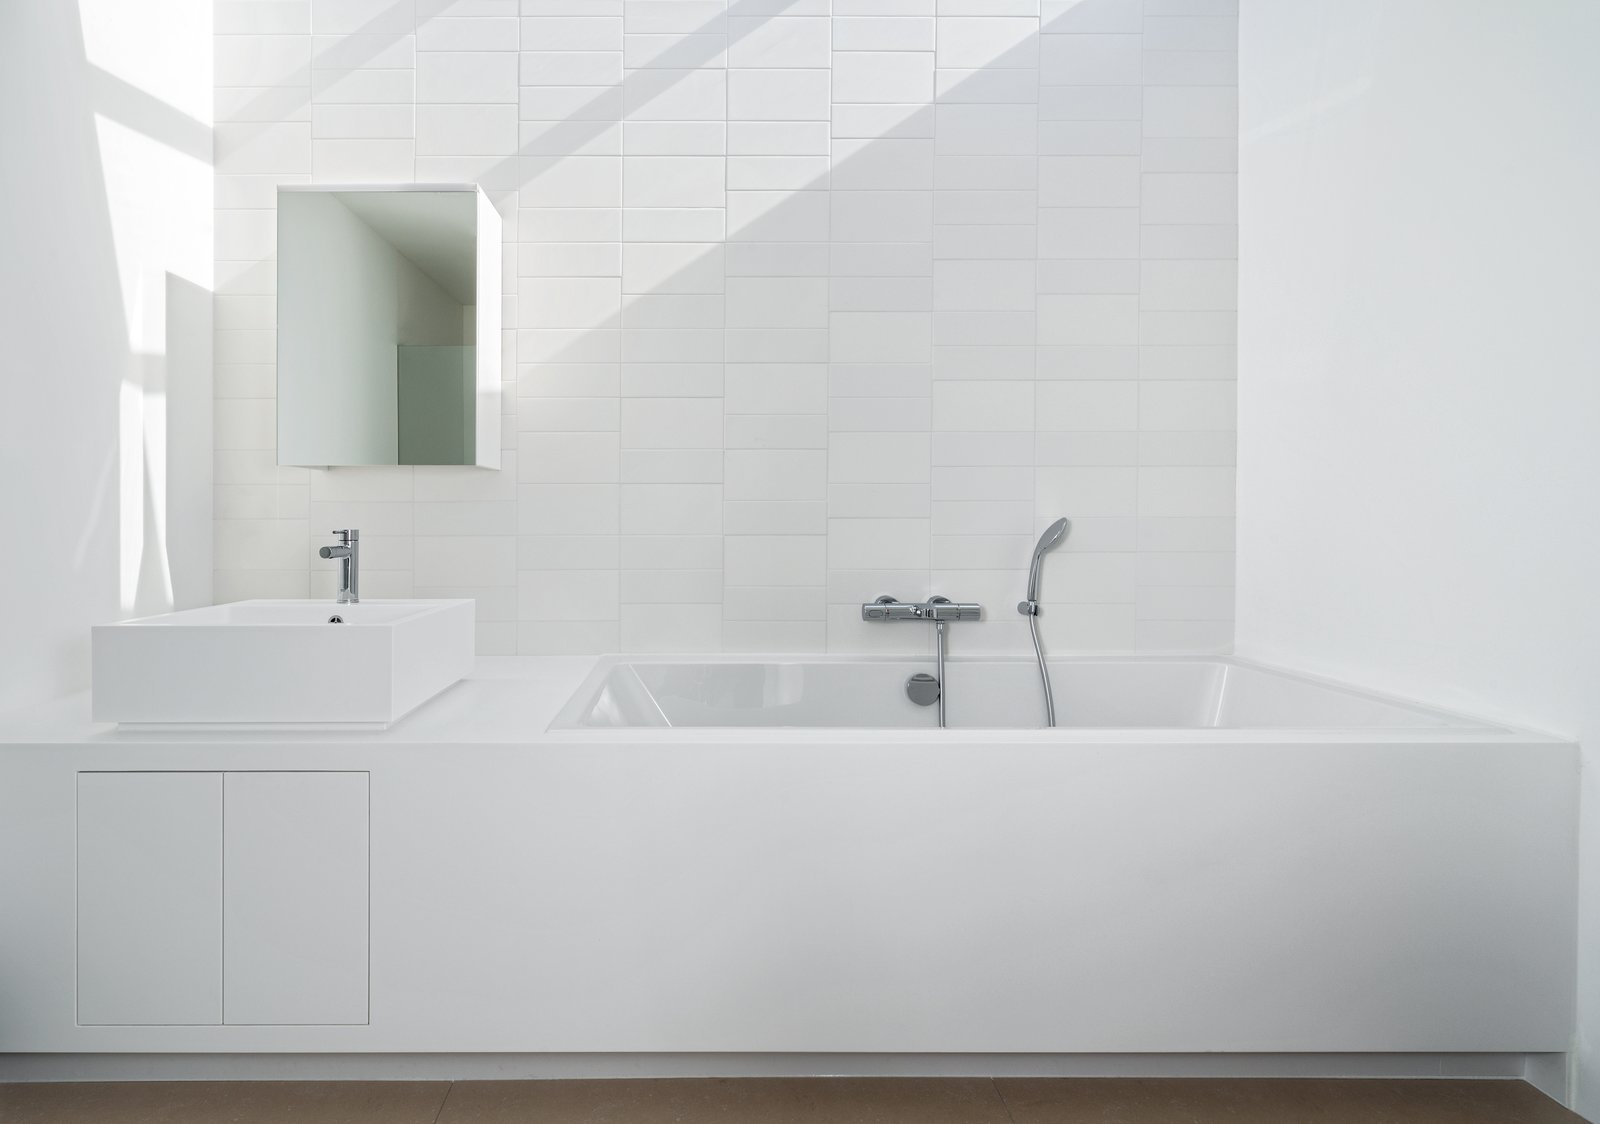 Bath Room, Soaking Tub, Ceramic Tile Wall, and Vessel Sink  Photo 10 of 10 in A Cramped Amsterdam Apartment Is Transformed Into an Airy Loft